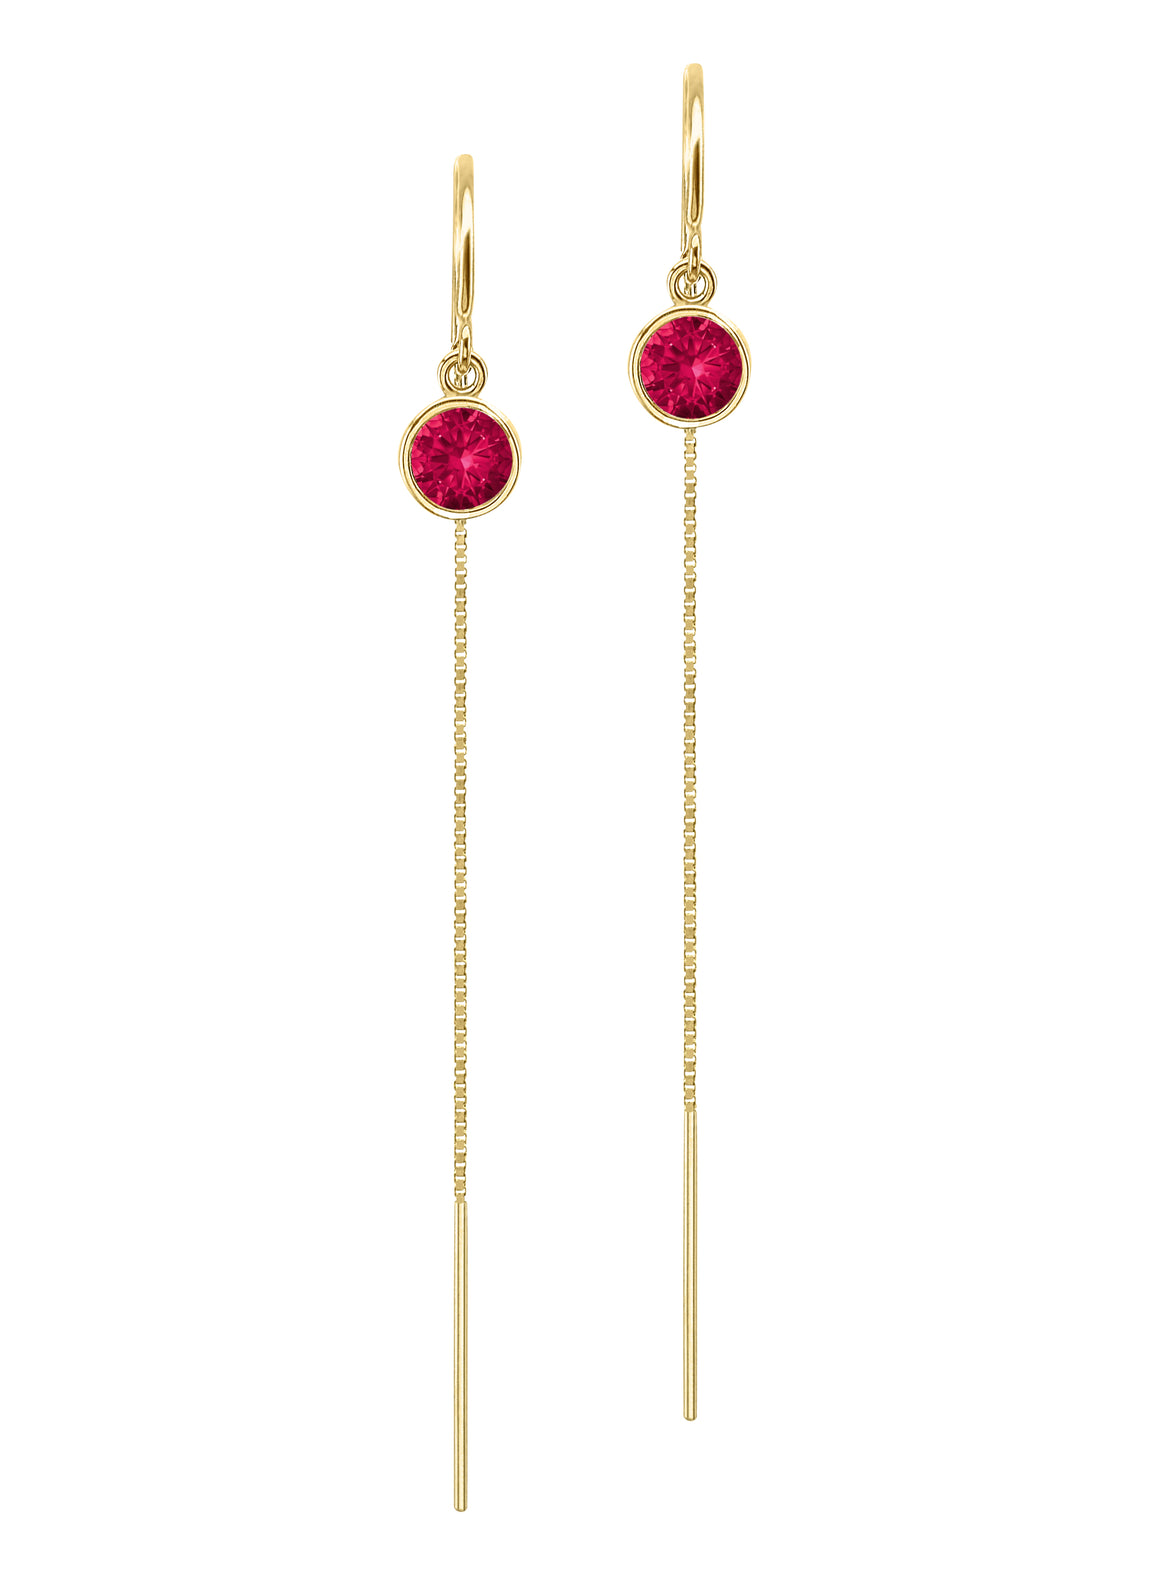 14K Yellow Gold Floating Ruby Box Chain Threader Earrings